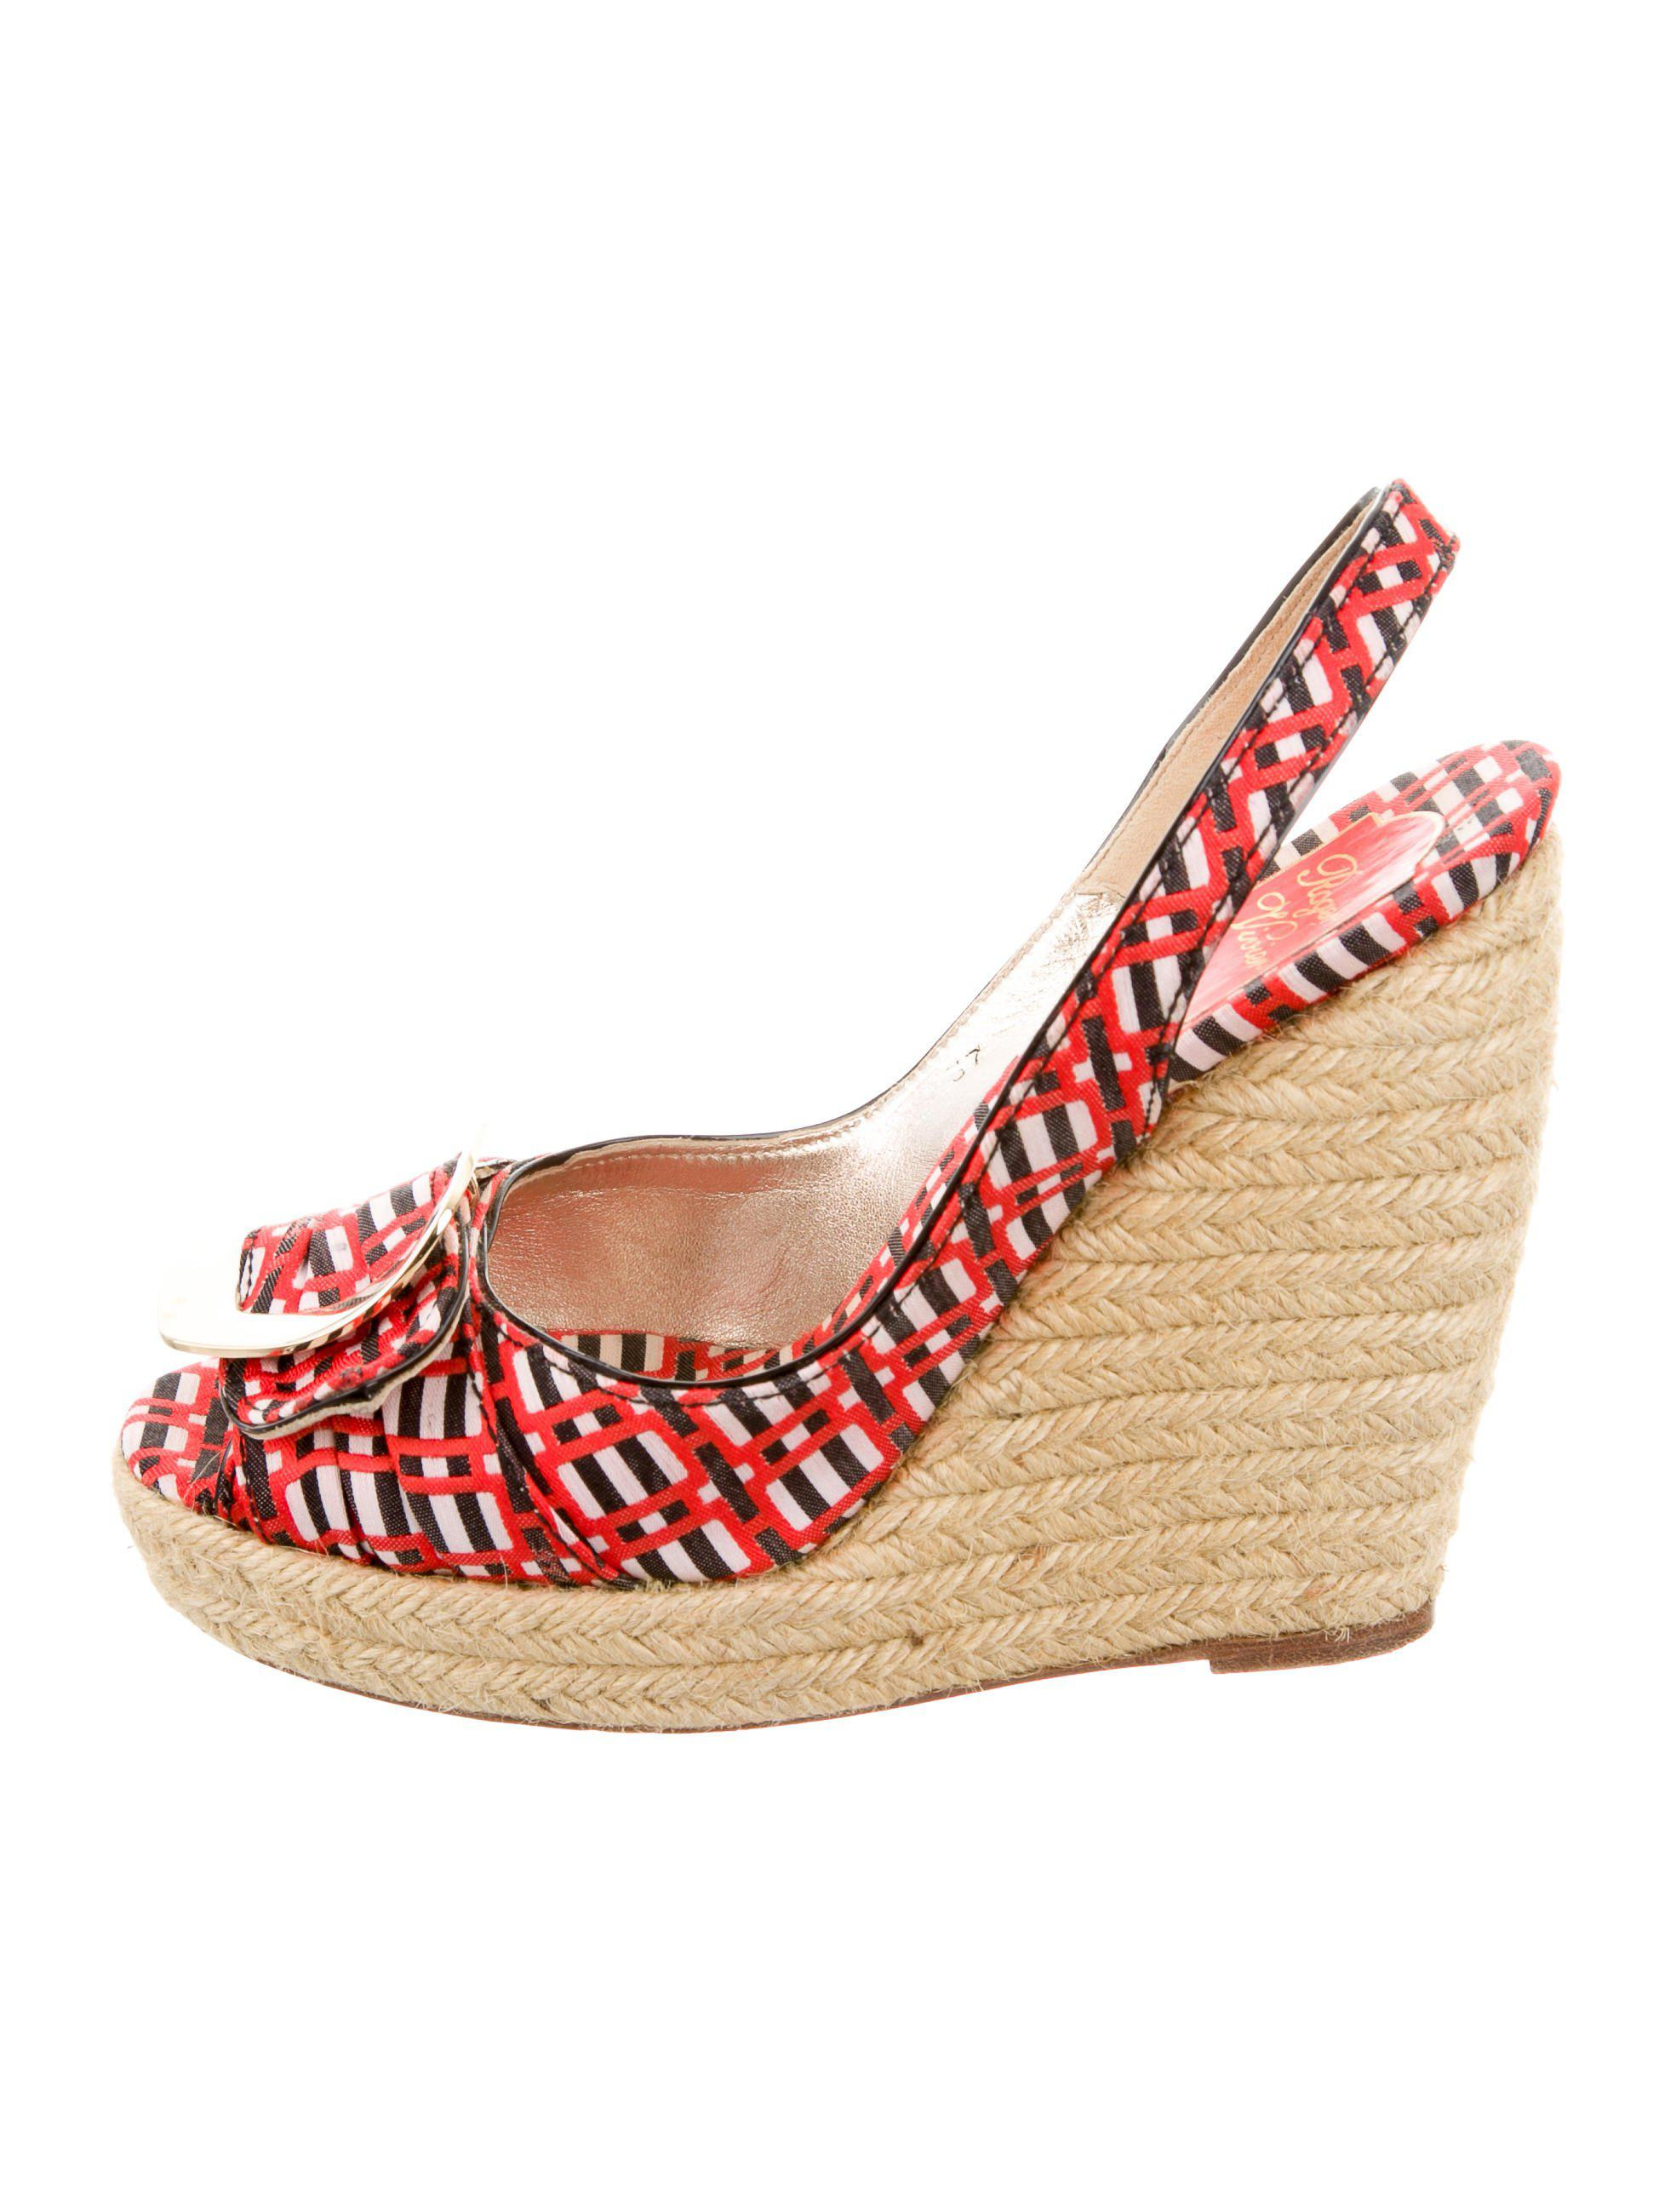 countdown package free shipping store Roger Vivier Suede Espadrille Wedges qwZkHSzs2